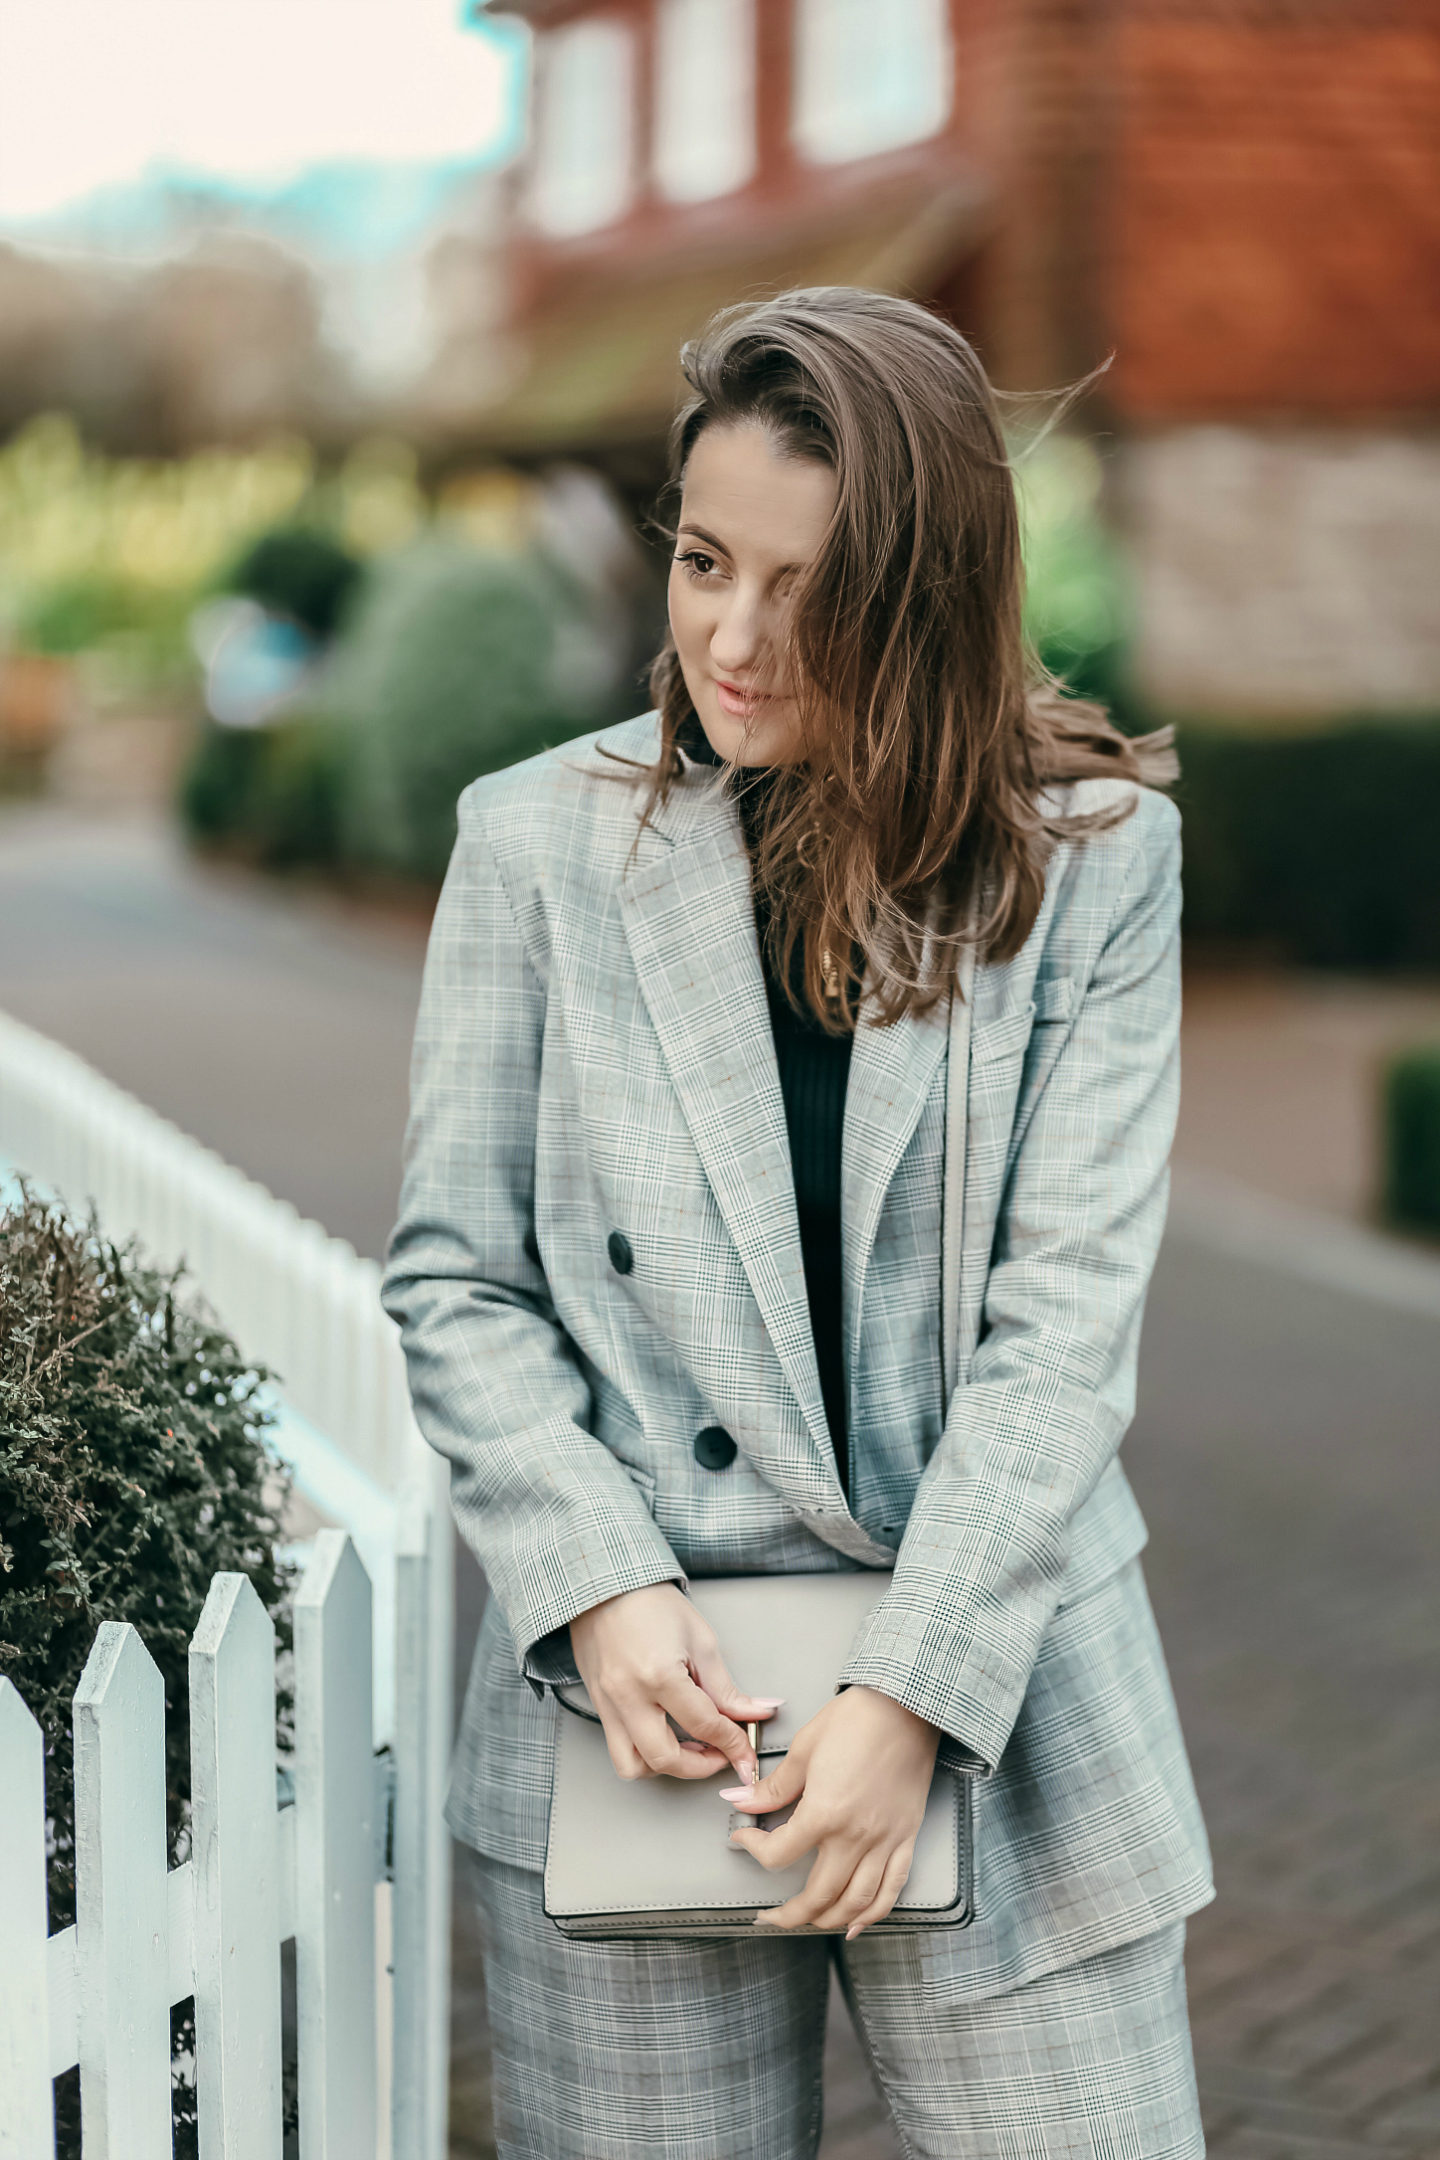 How to wear a suit outside the office hours - Launeden